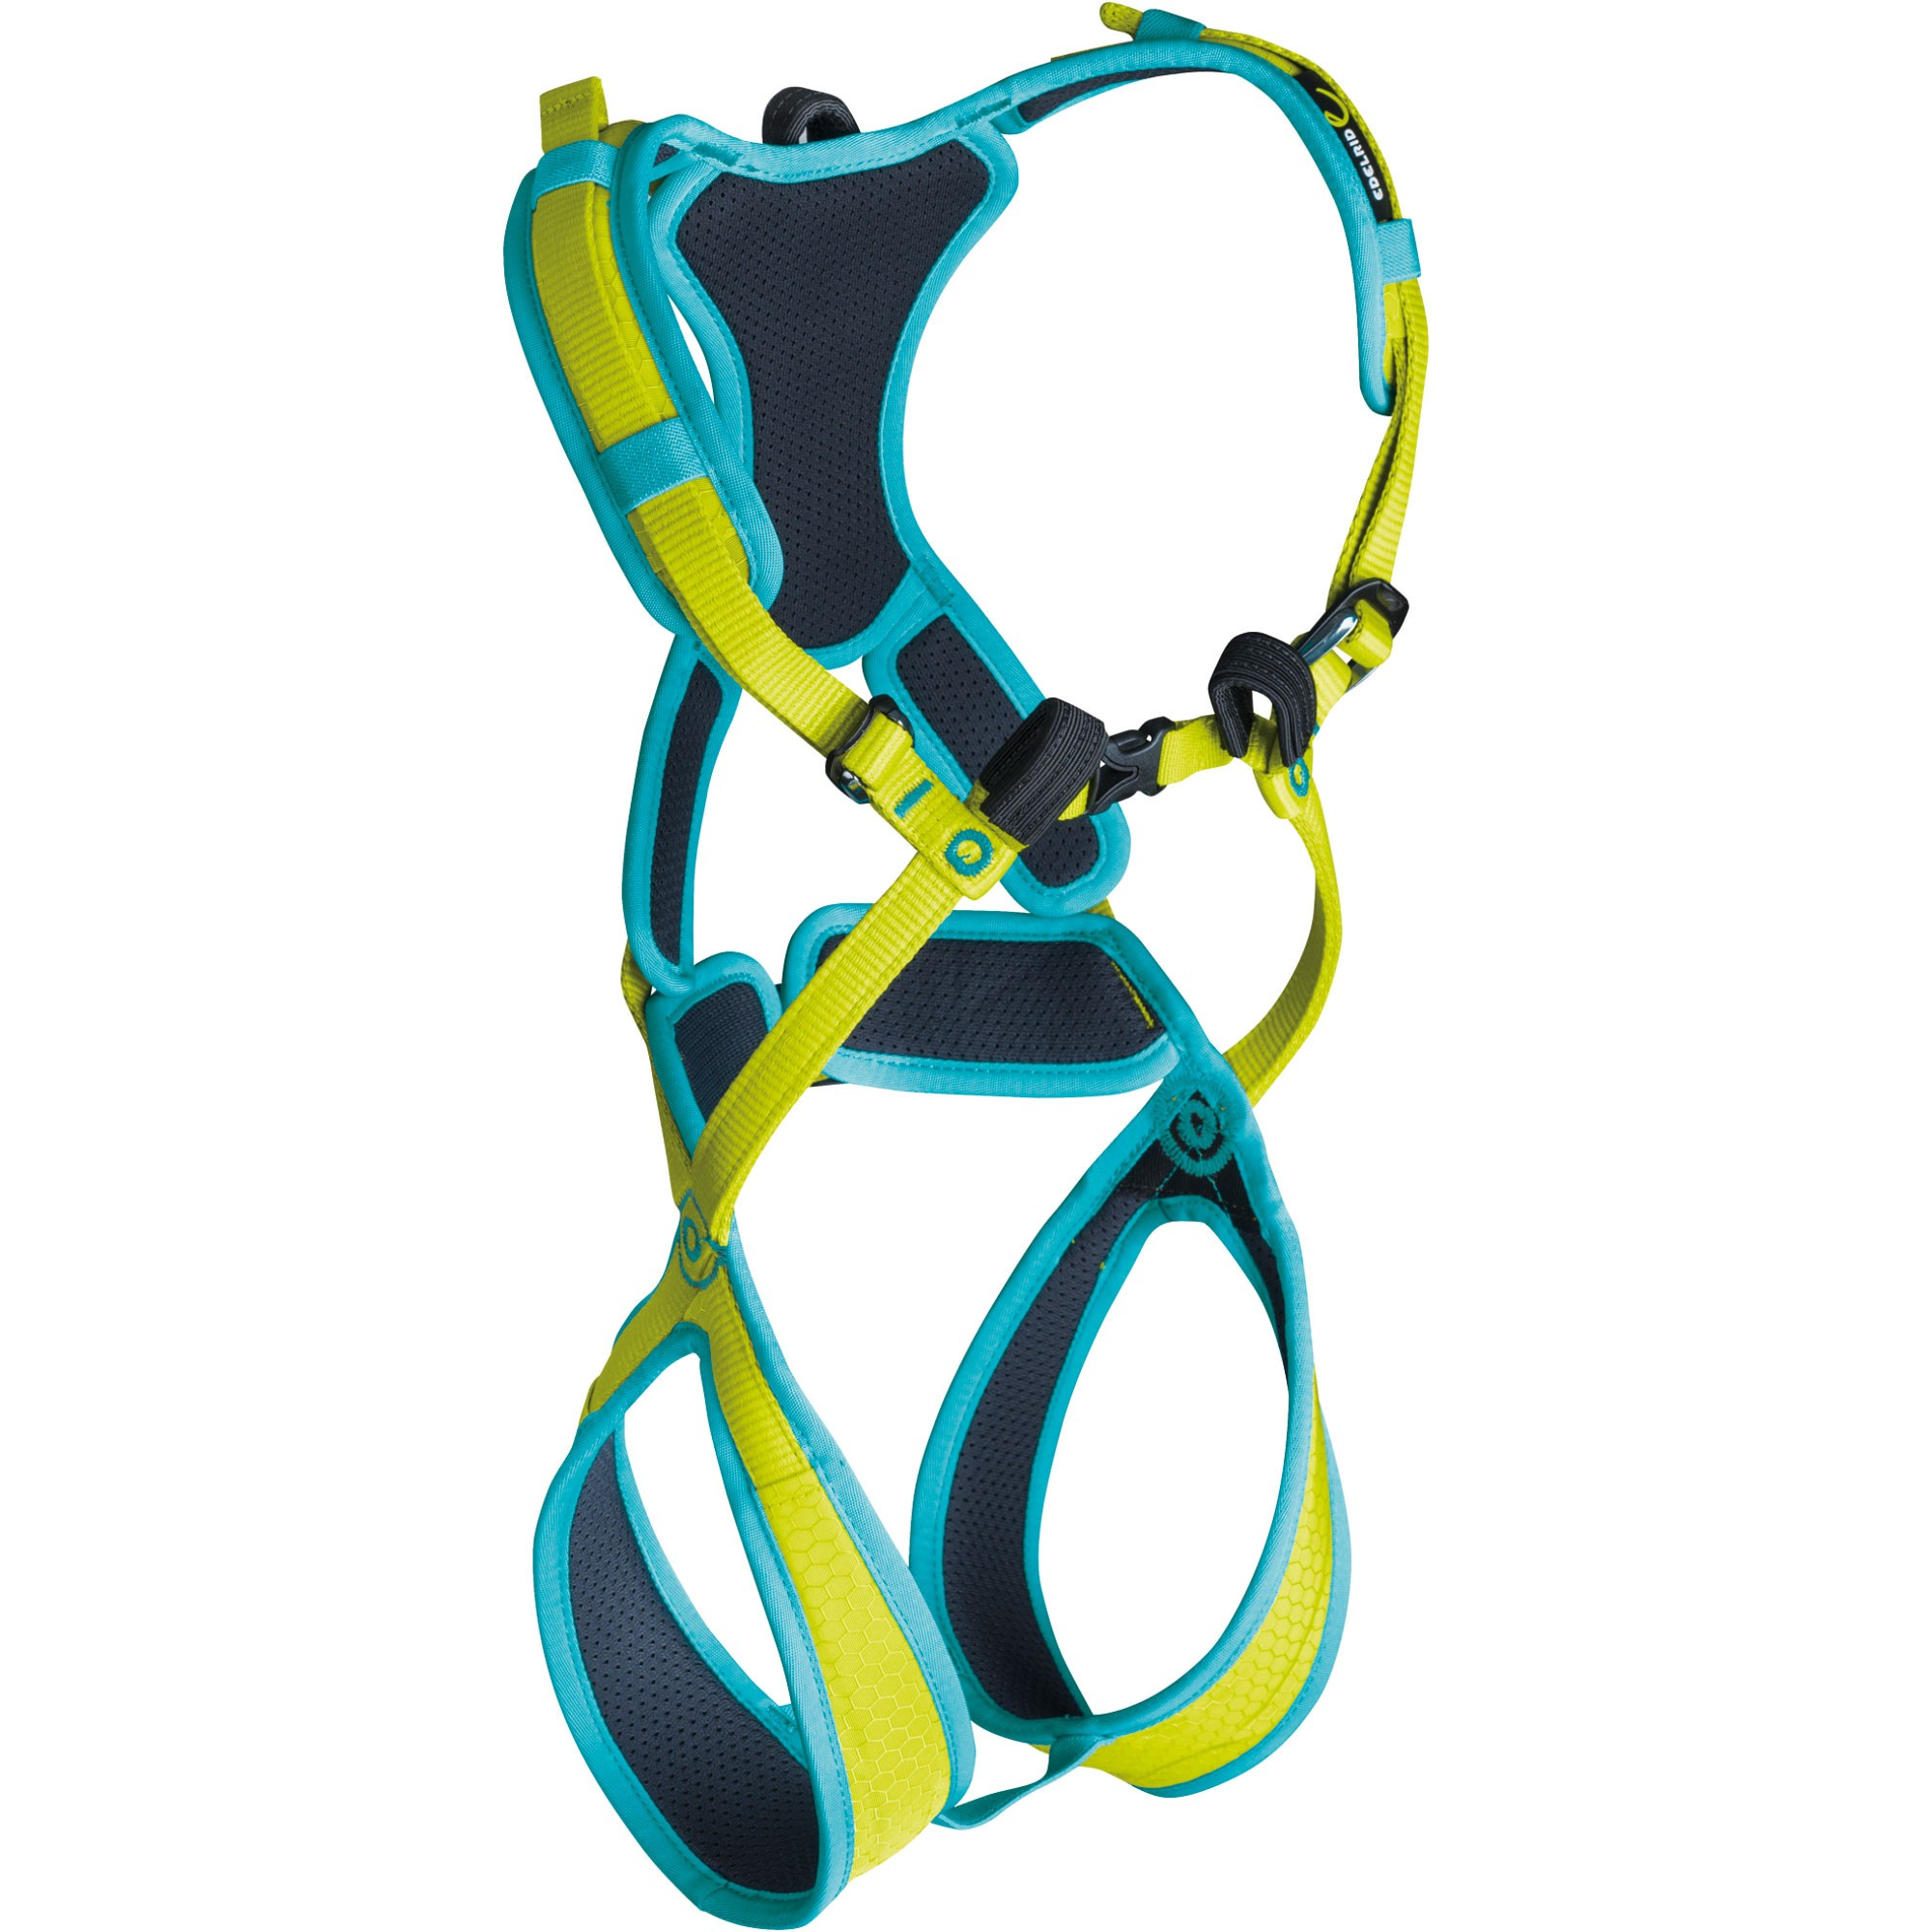 Edelrid Fraggle II Children's Climbing Harness - Oasis/Icemint